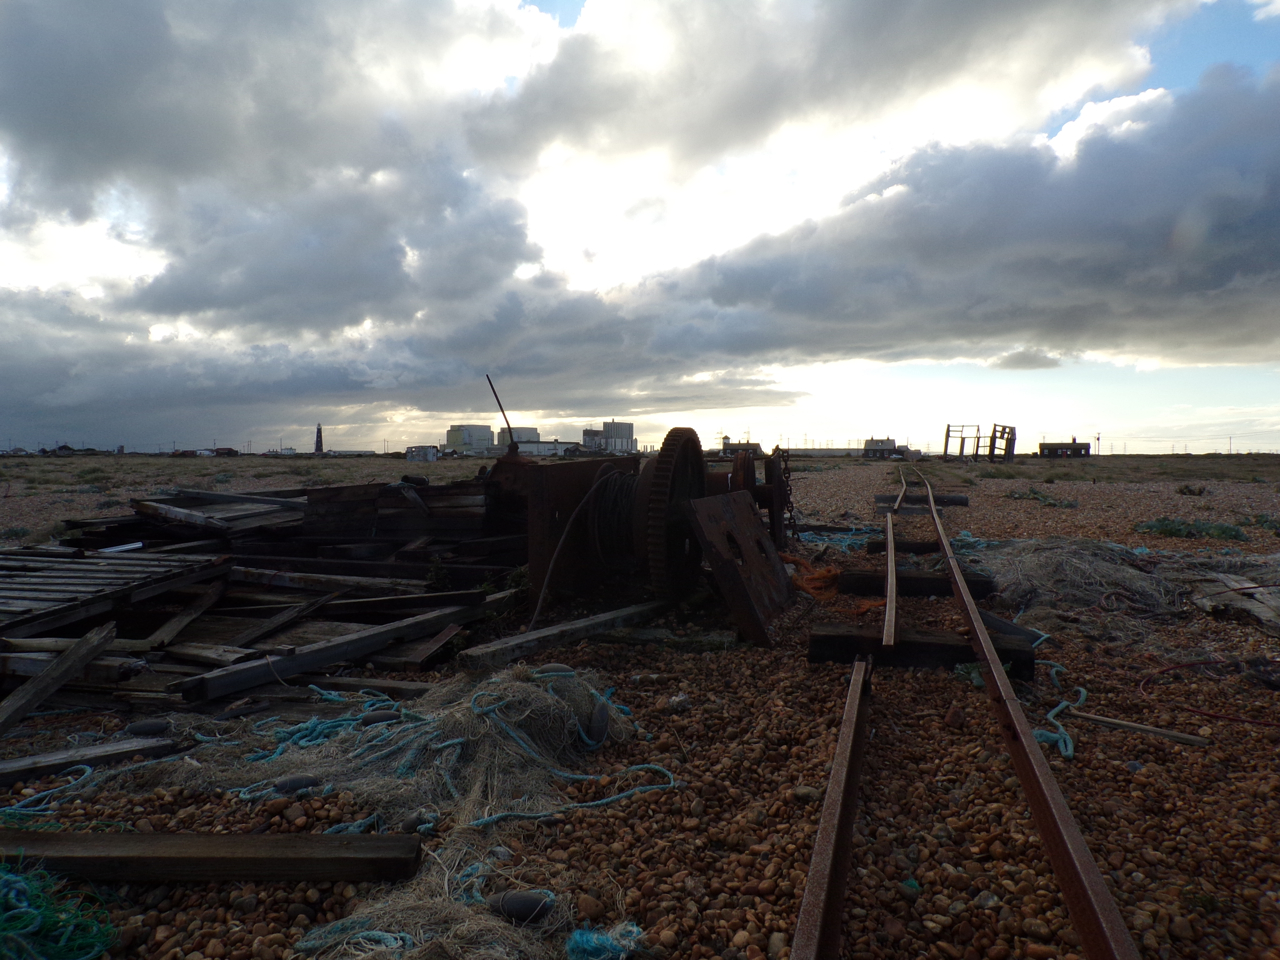 Remnants & power station under a stormy sky, Dungeness. Photograph © Mari French 2018